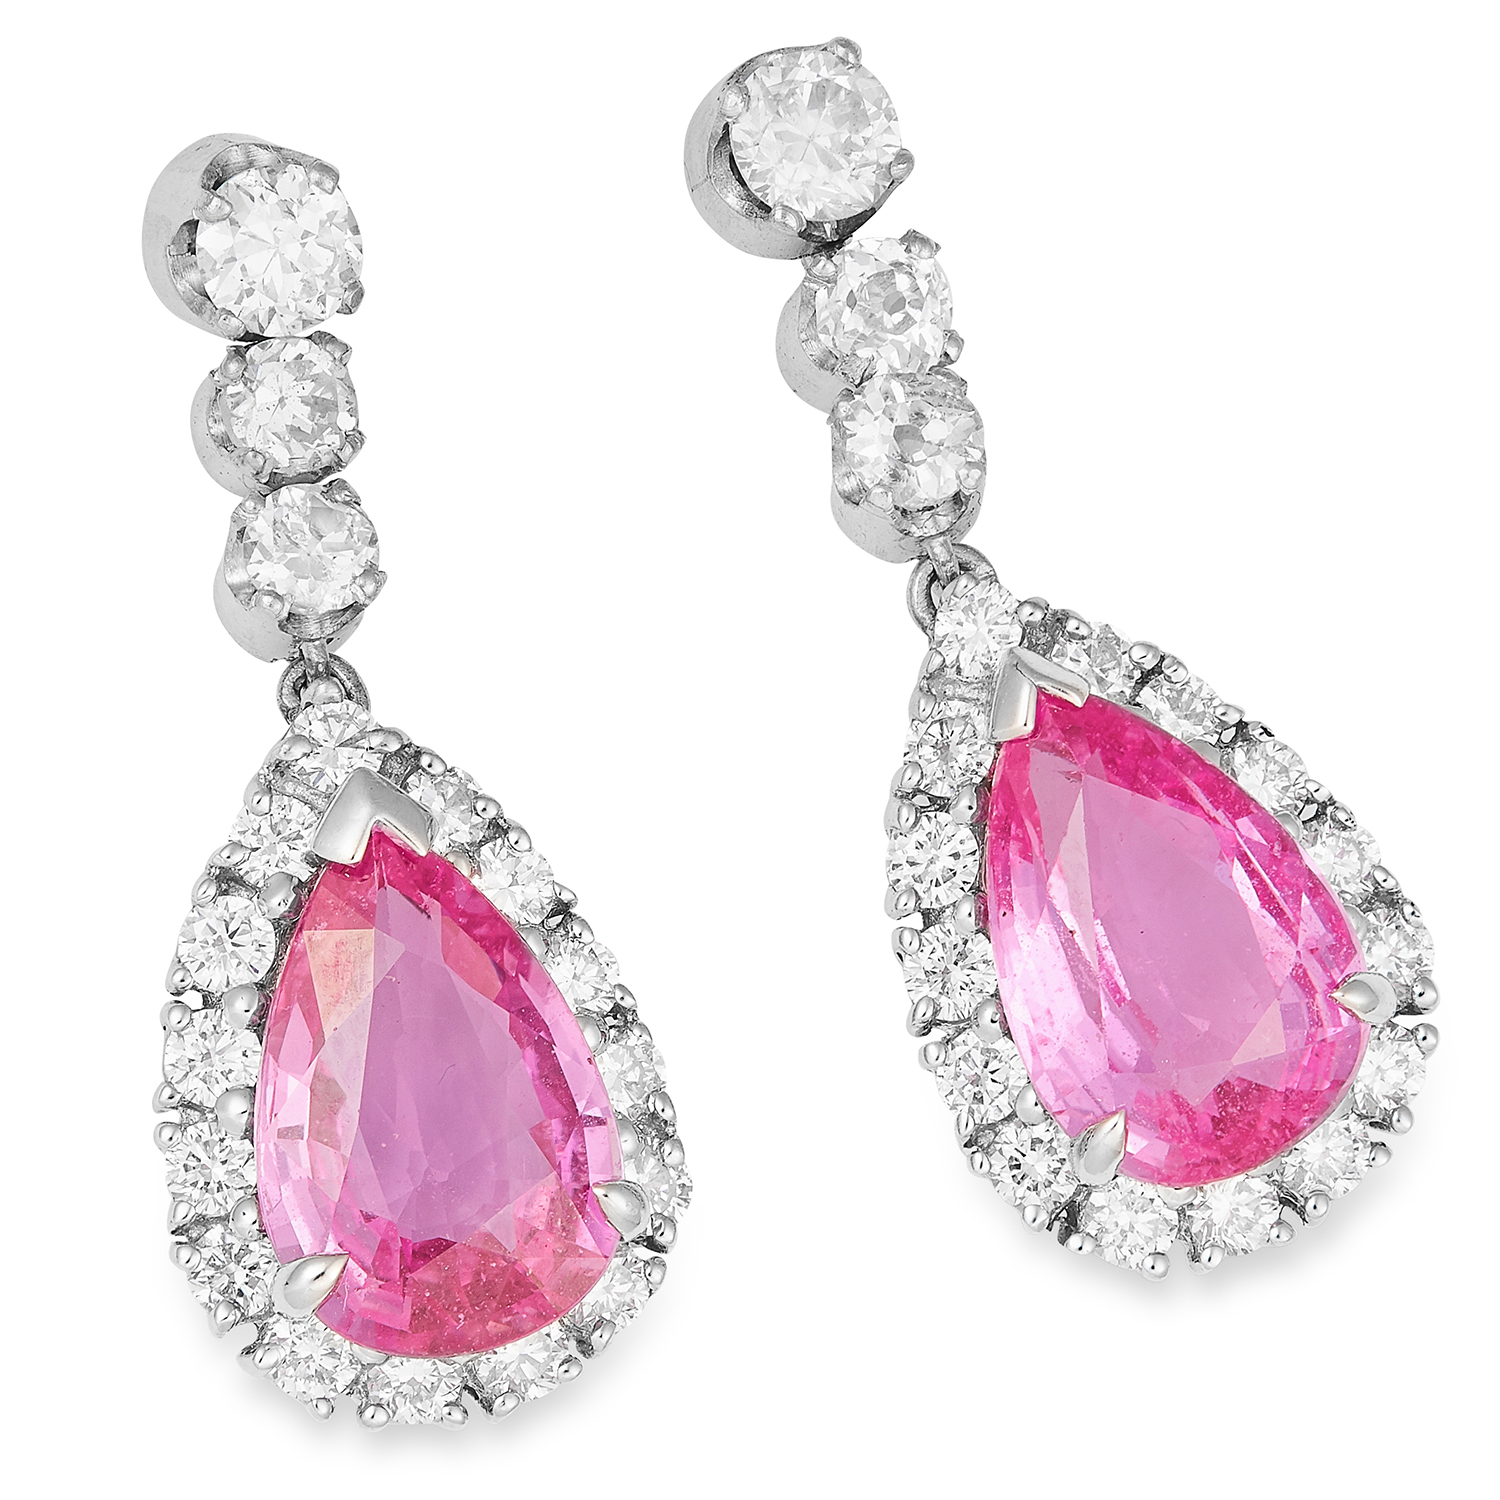 4.20 CARAT PINK SAPPHIRE AND DIAMOND EARRINGS in 18ct white gold, each set with a pear cut